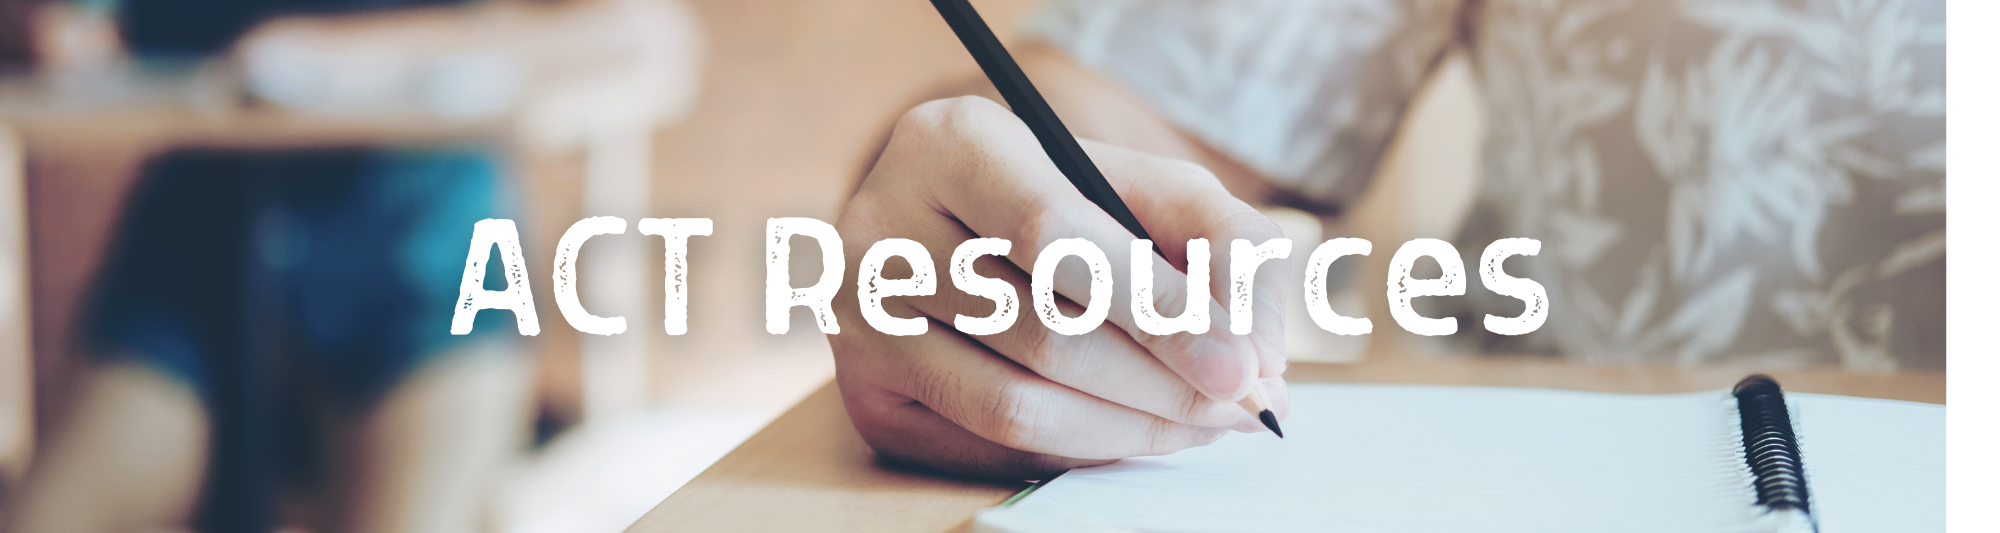 ACt resources